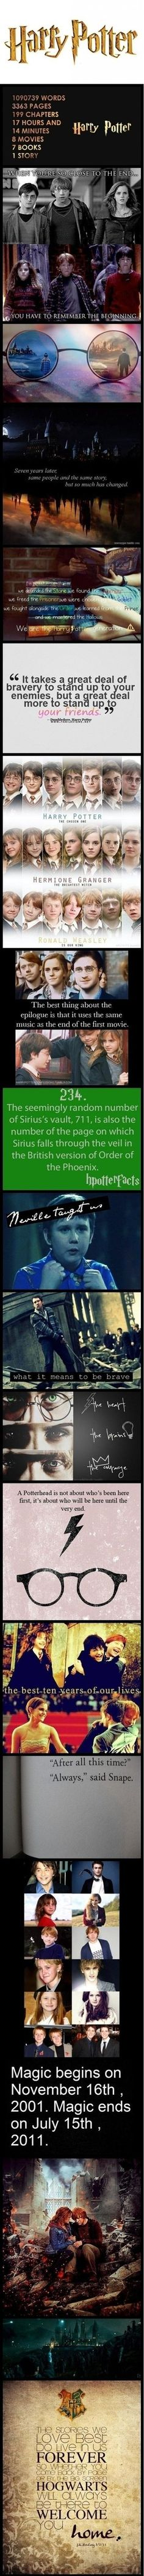 You're a liar if you say this didn't make you tear up a bit..I <3 Harry Potter!